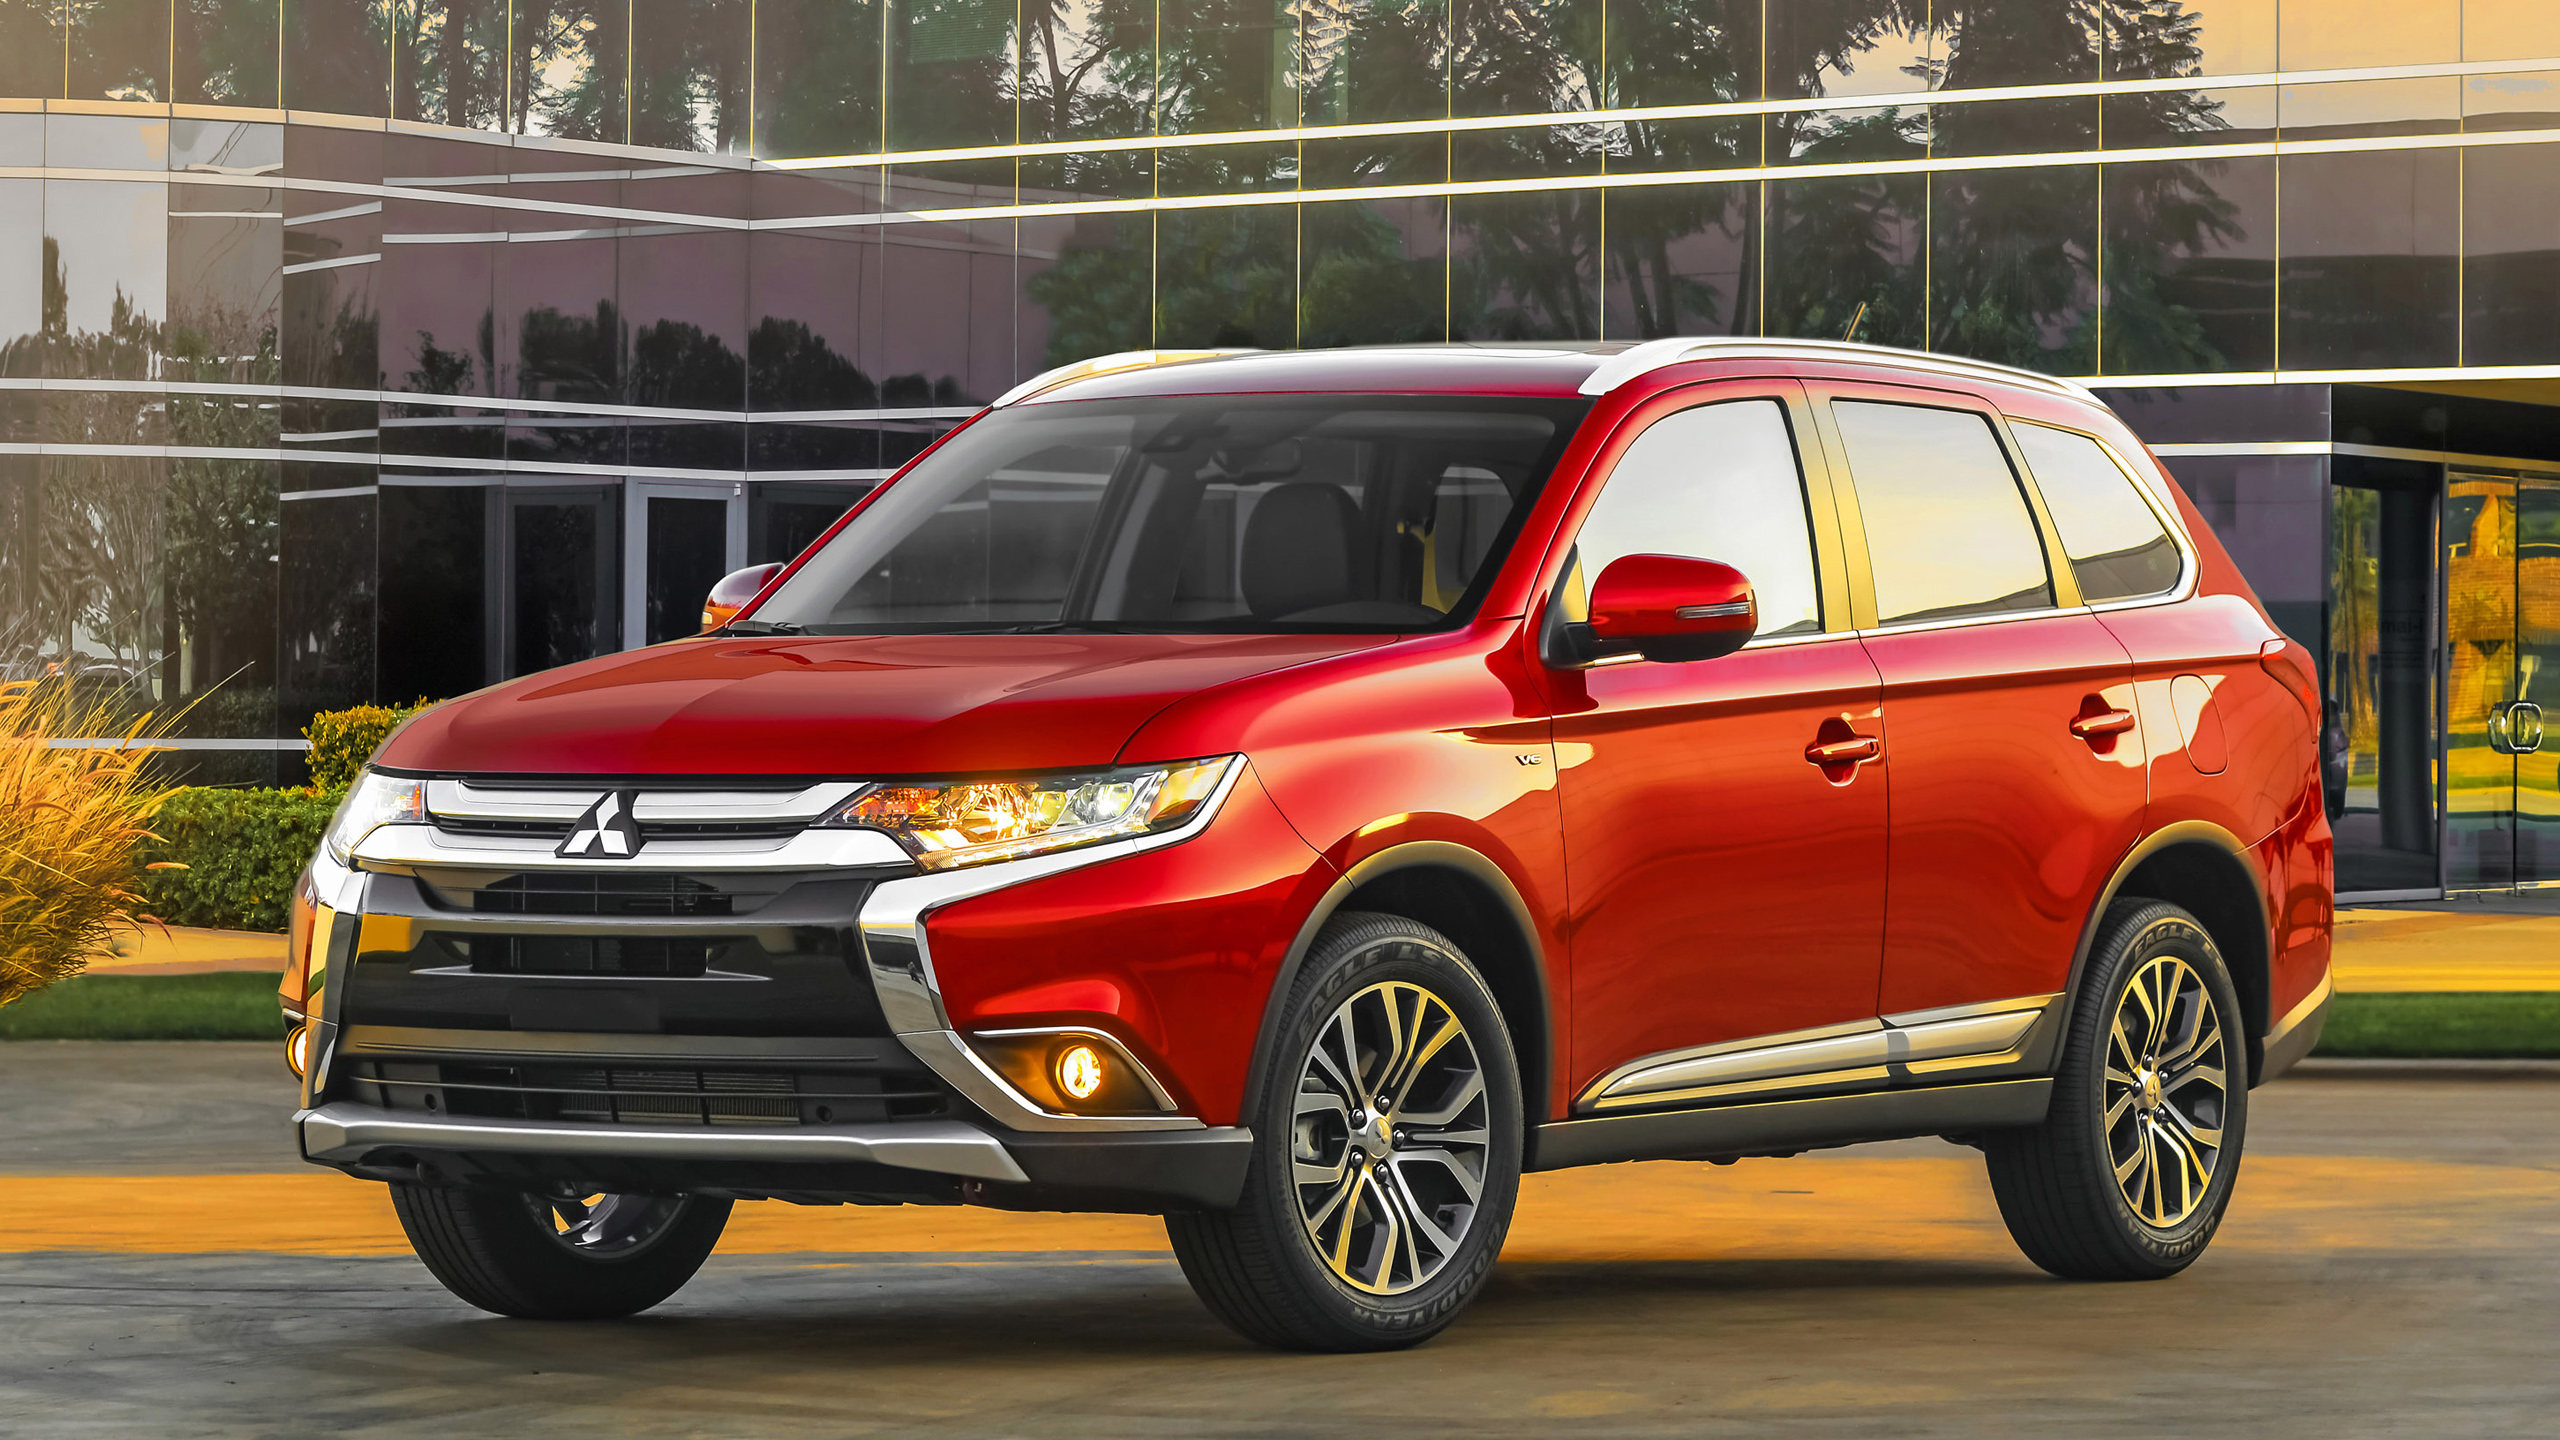 2016 Mitsubishi Outlander Wallpaper